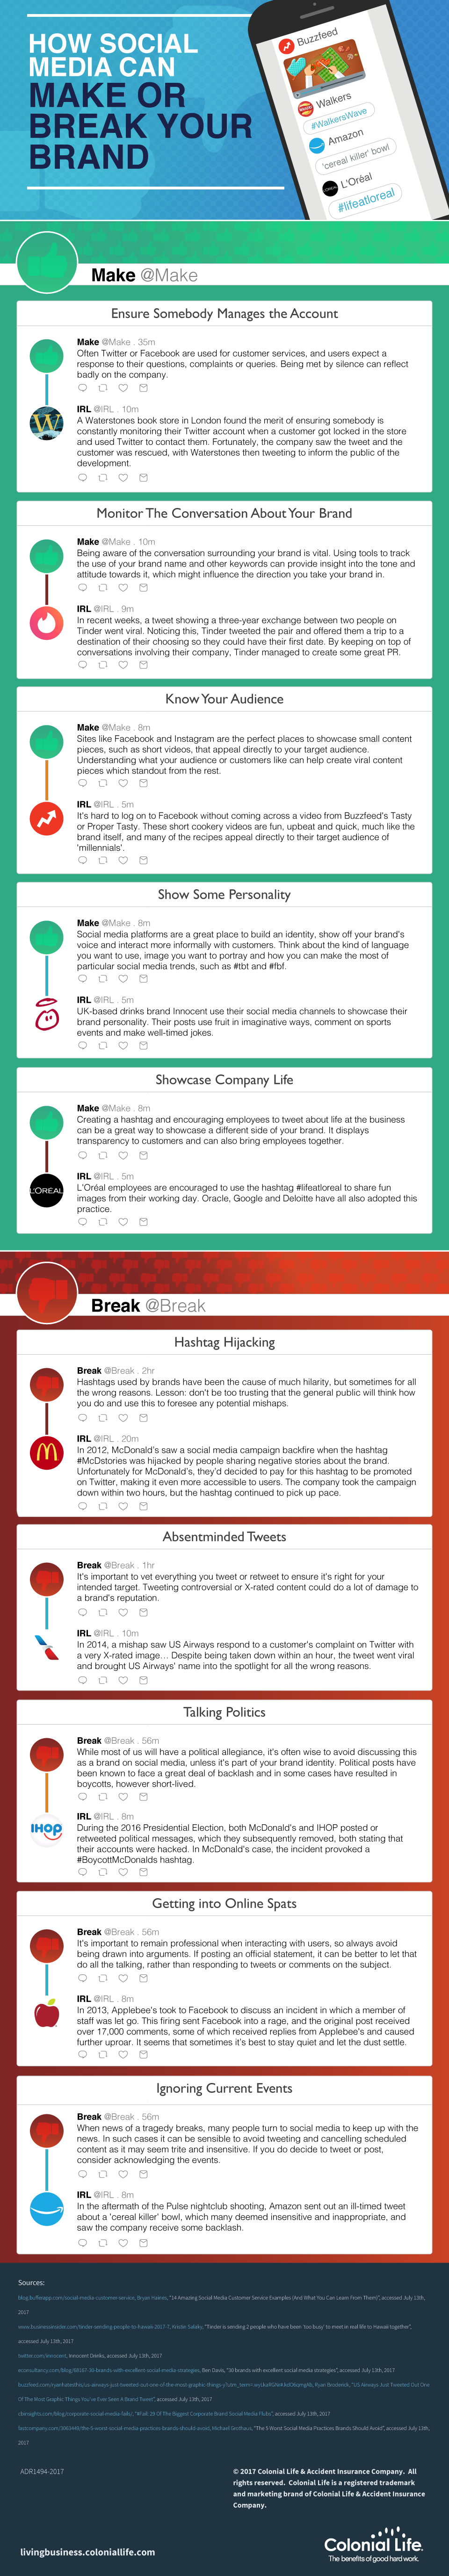 How Social Media Can Make or Break Your Brand [infographic]